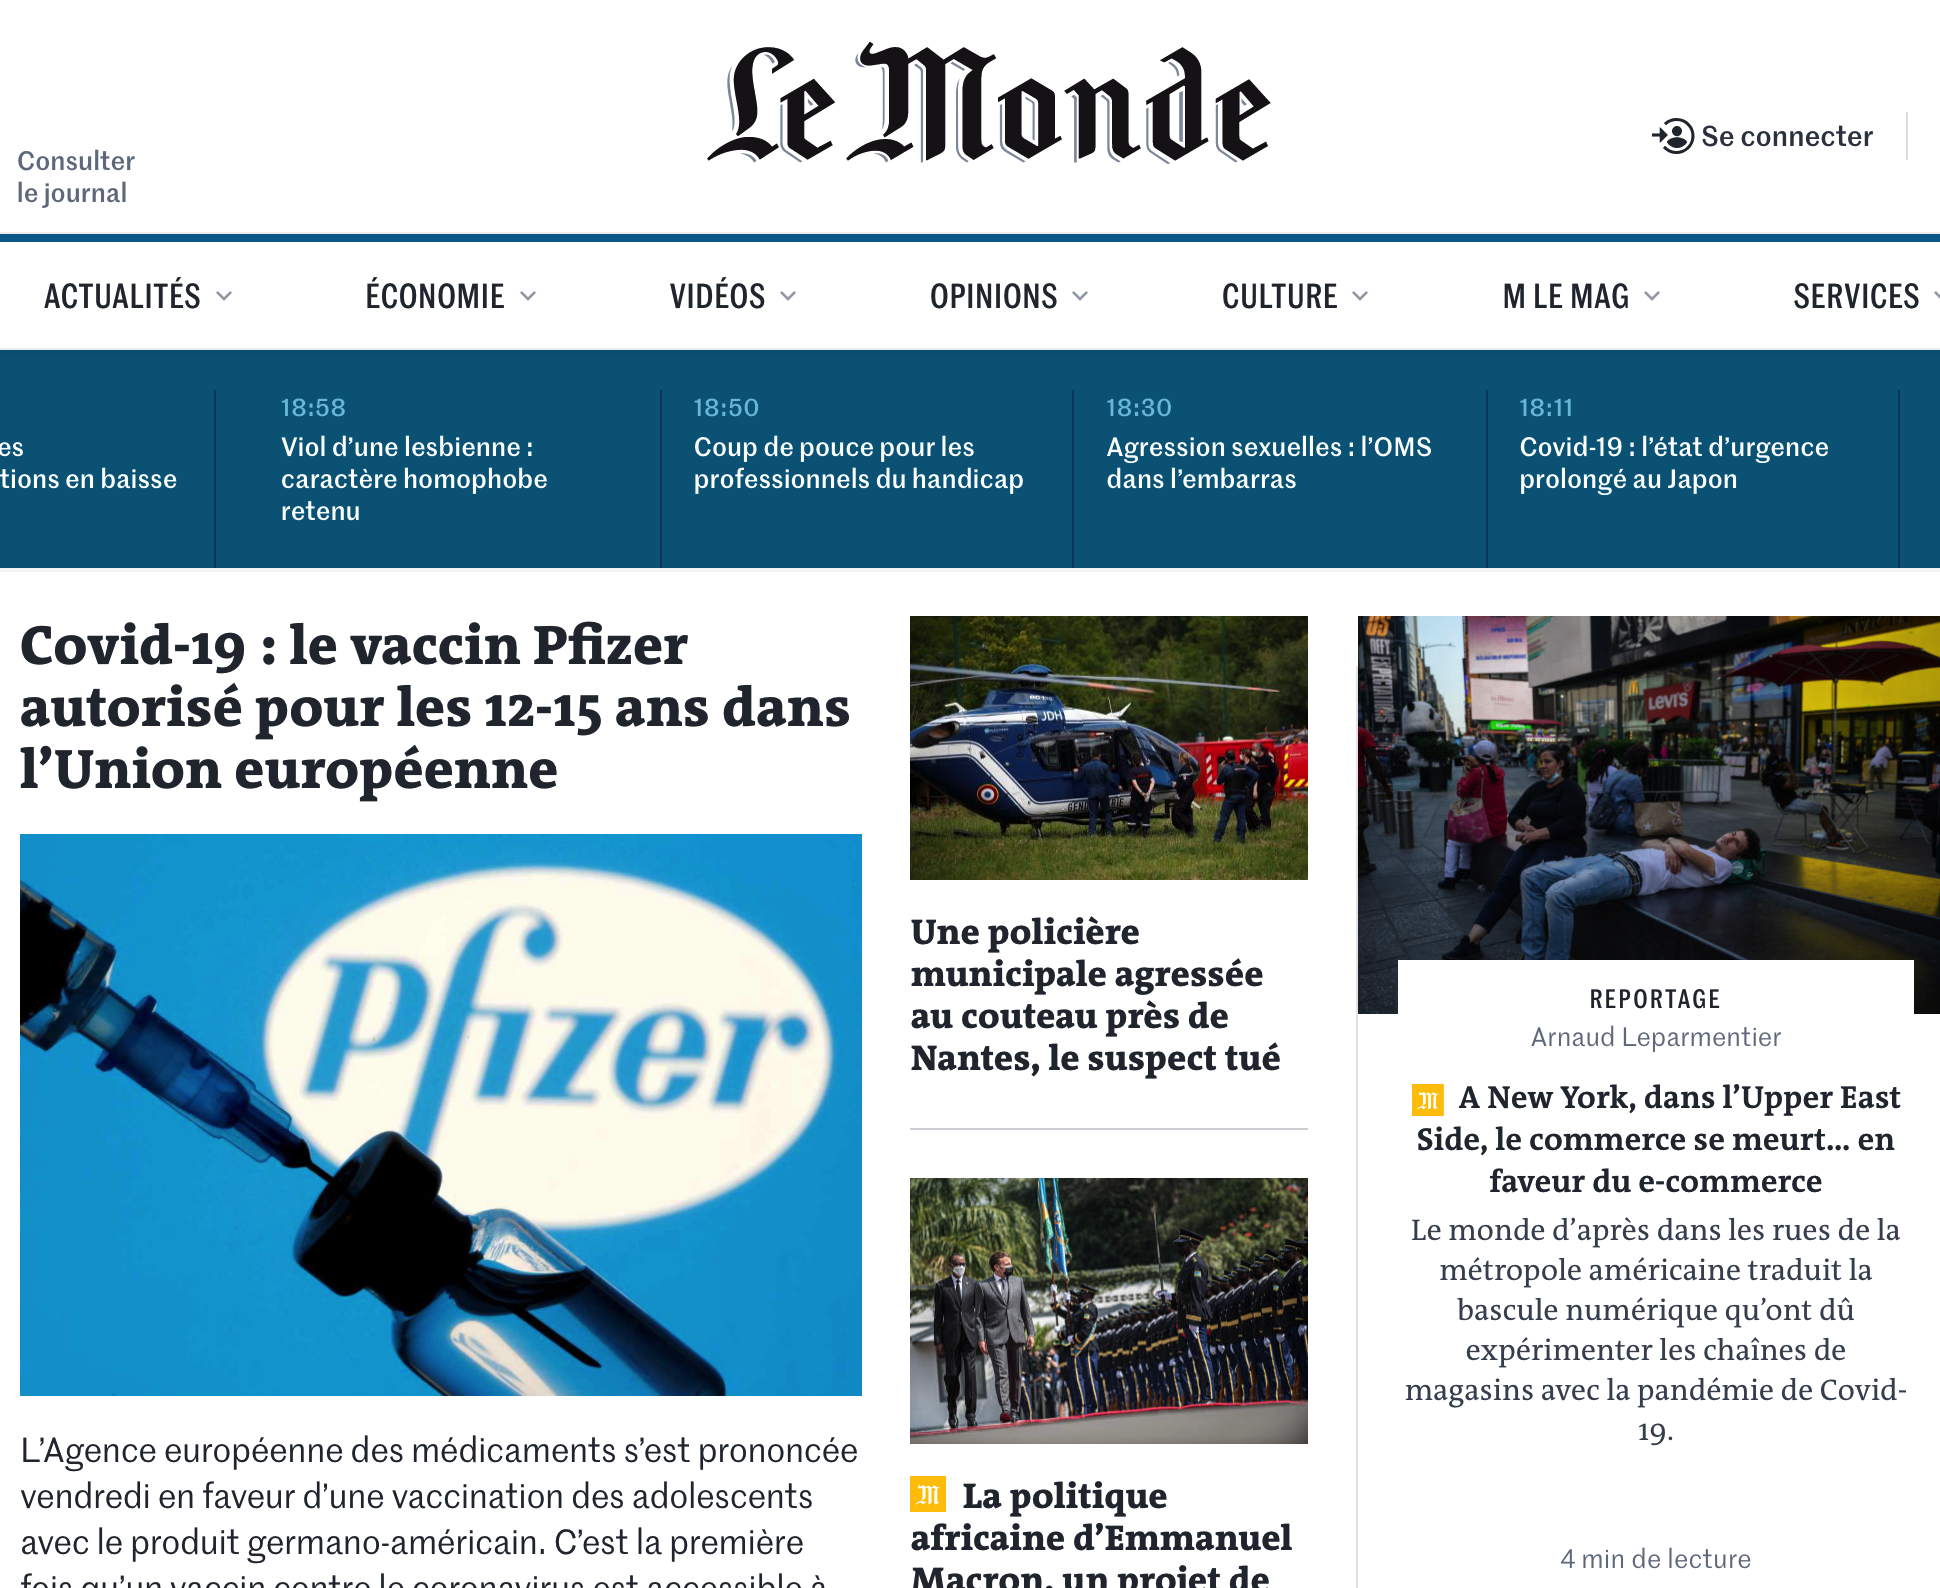 an image of a French newspaper homepage